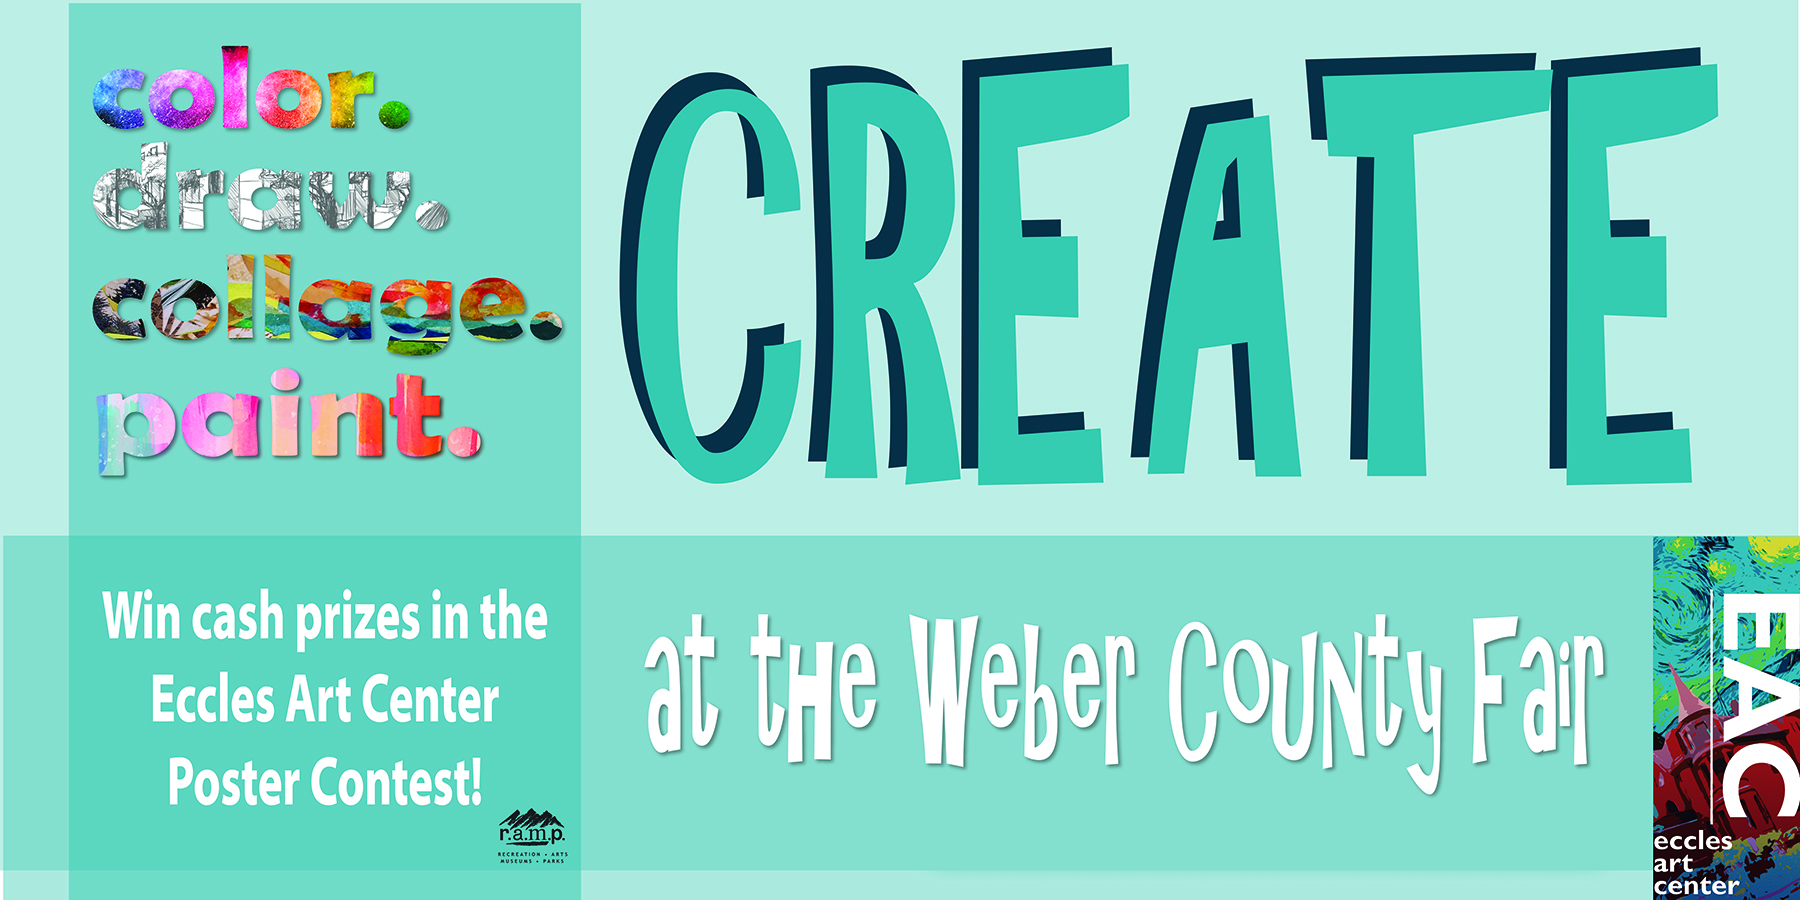 Eccles Community Art Center : Events : Competitions : CREATE